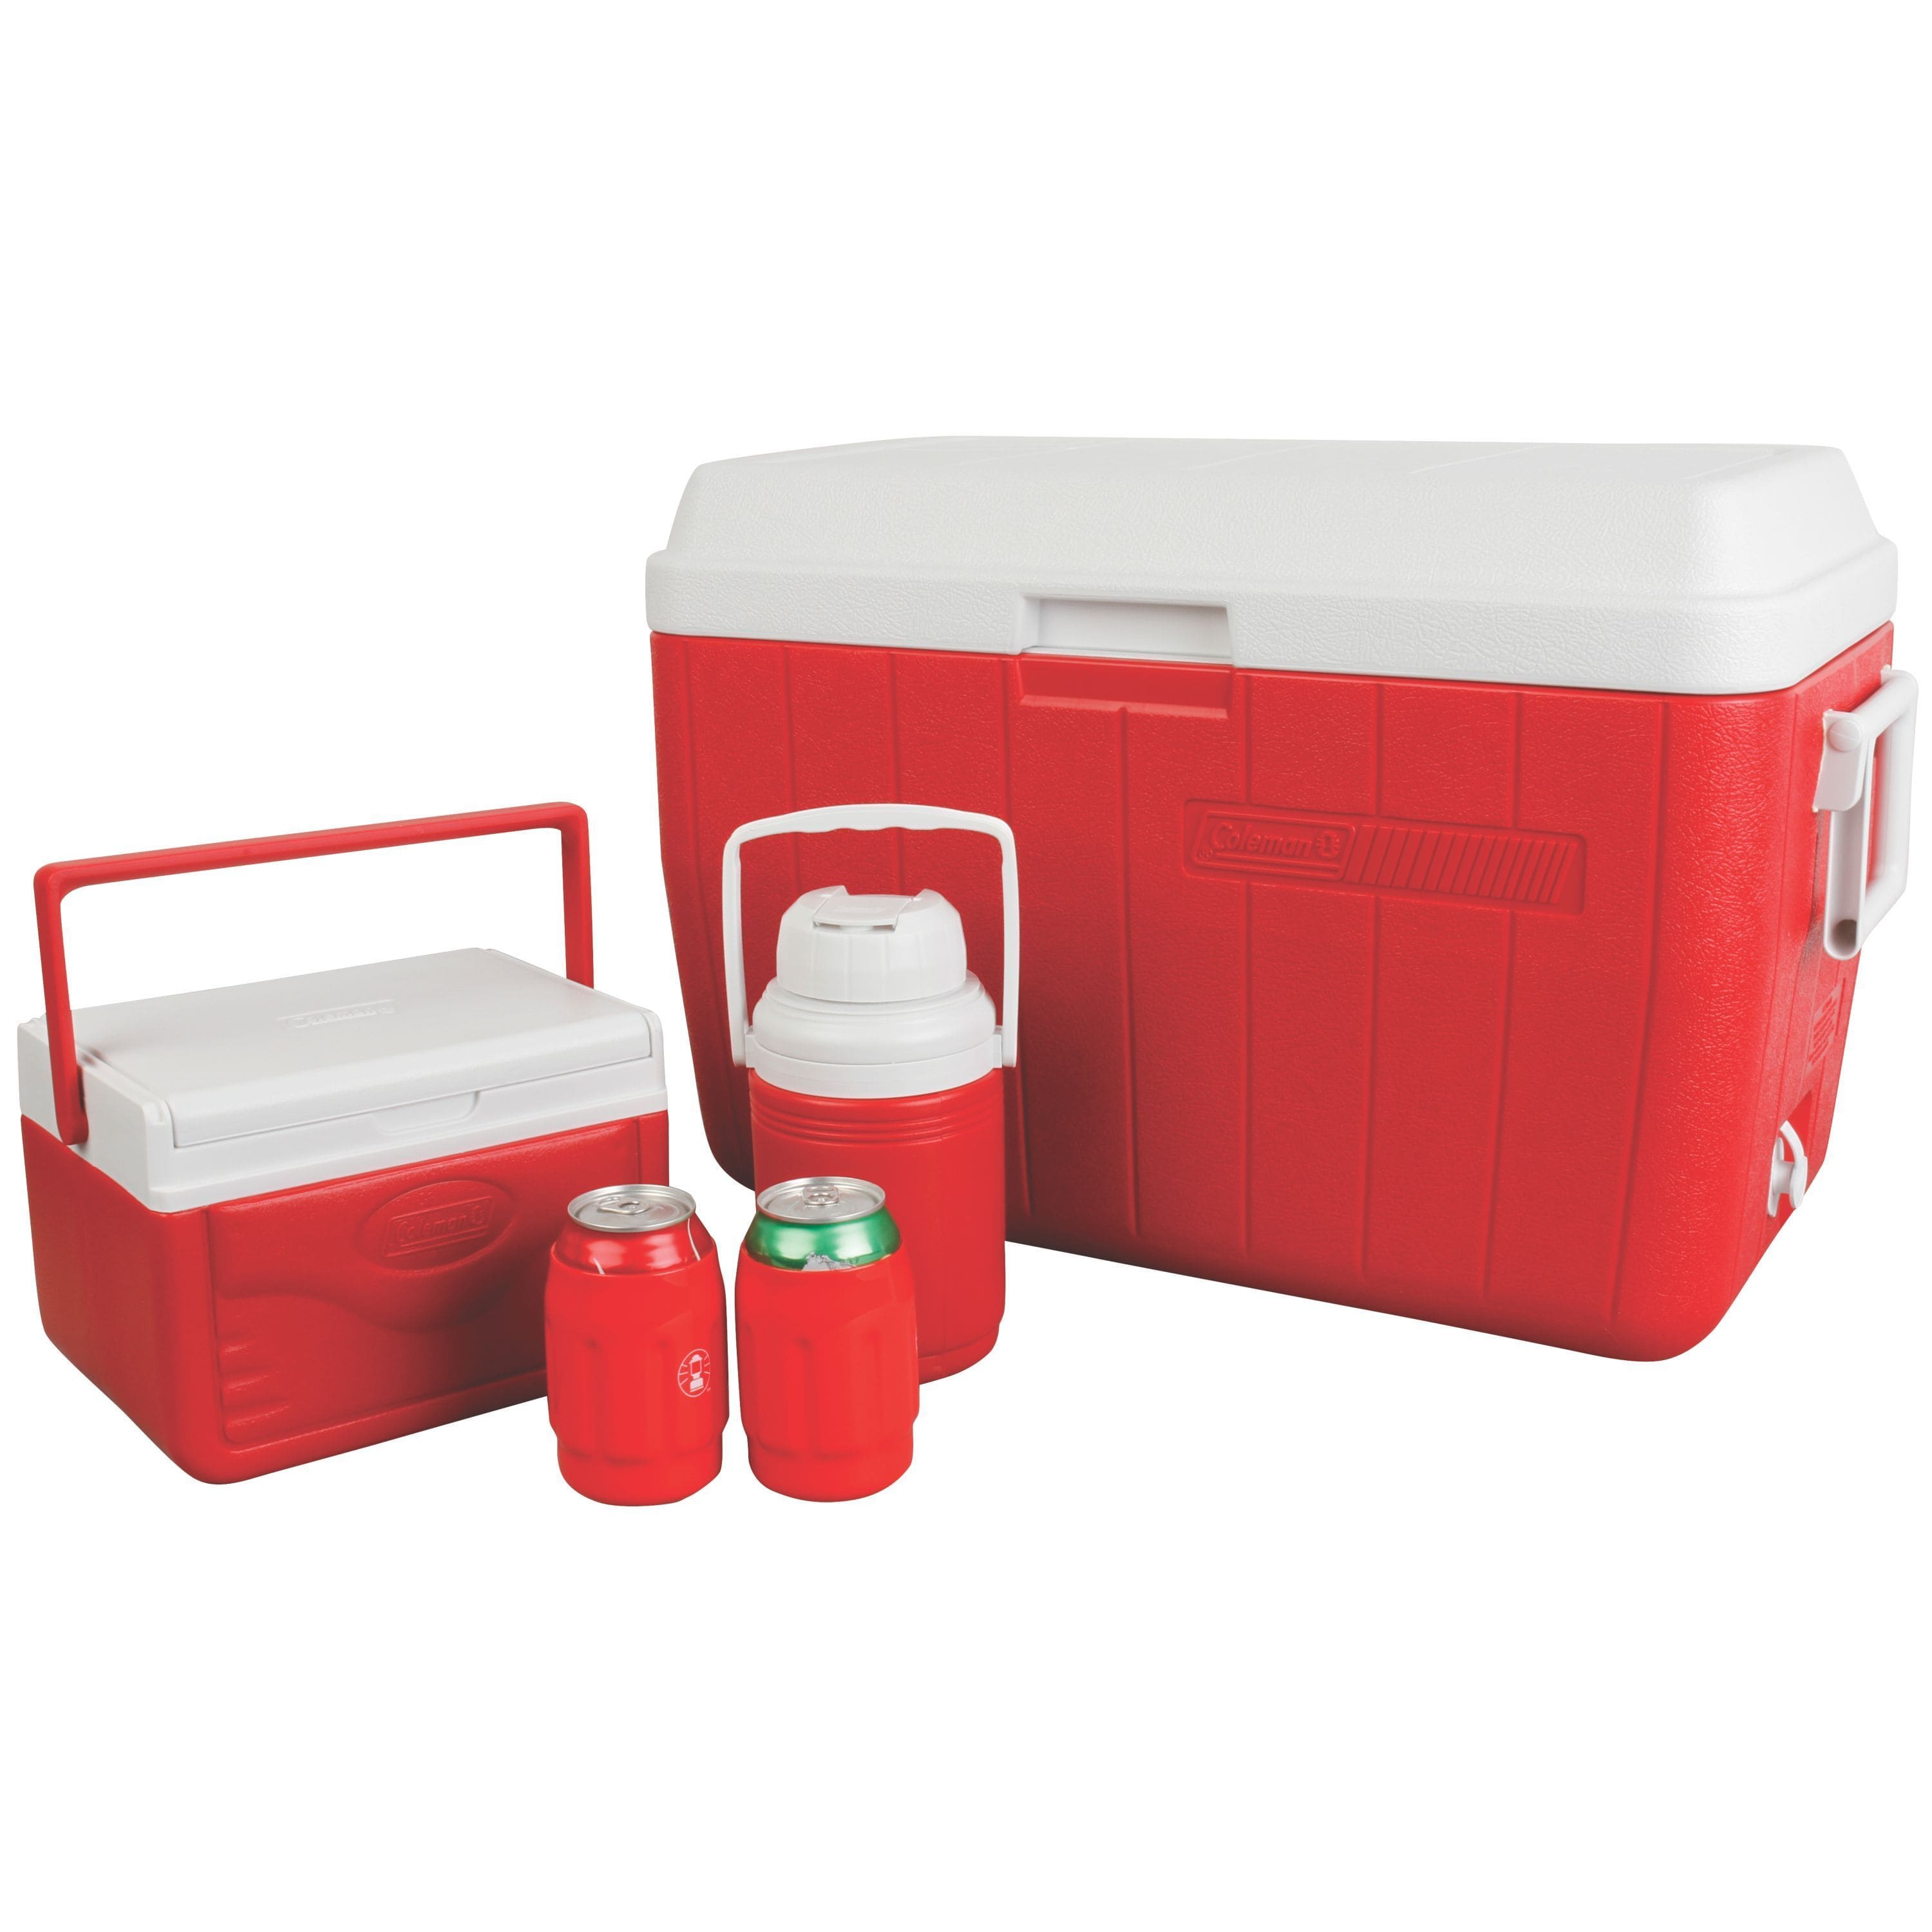 Coleman Red Cooler Combo, with 54-Quart Cooler, 5-Quart Cooler, and 1/3-Gallon Jug